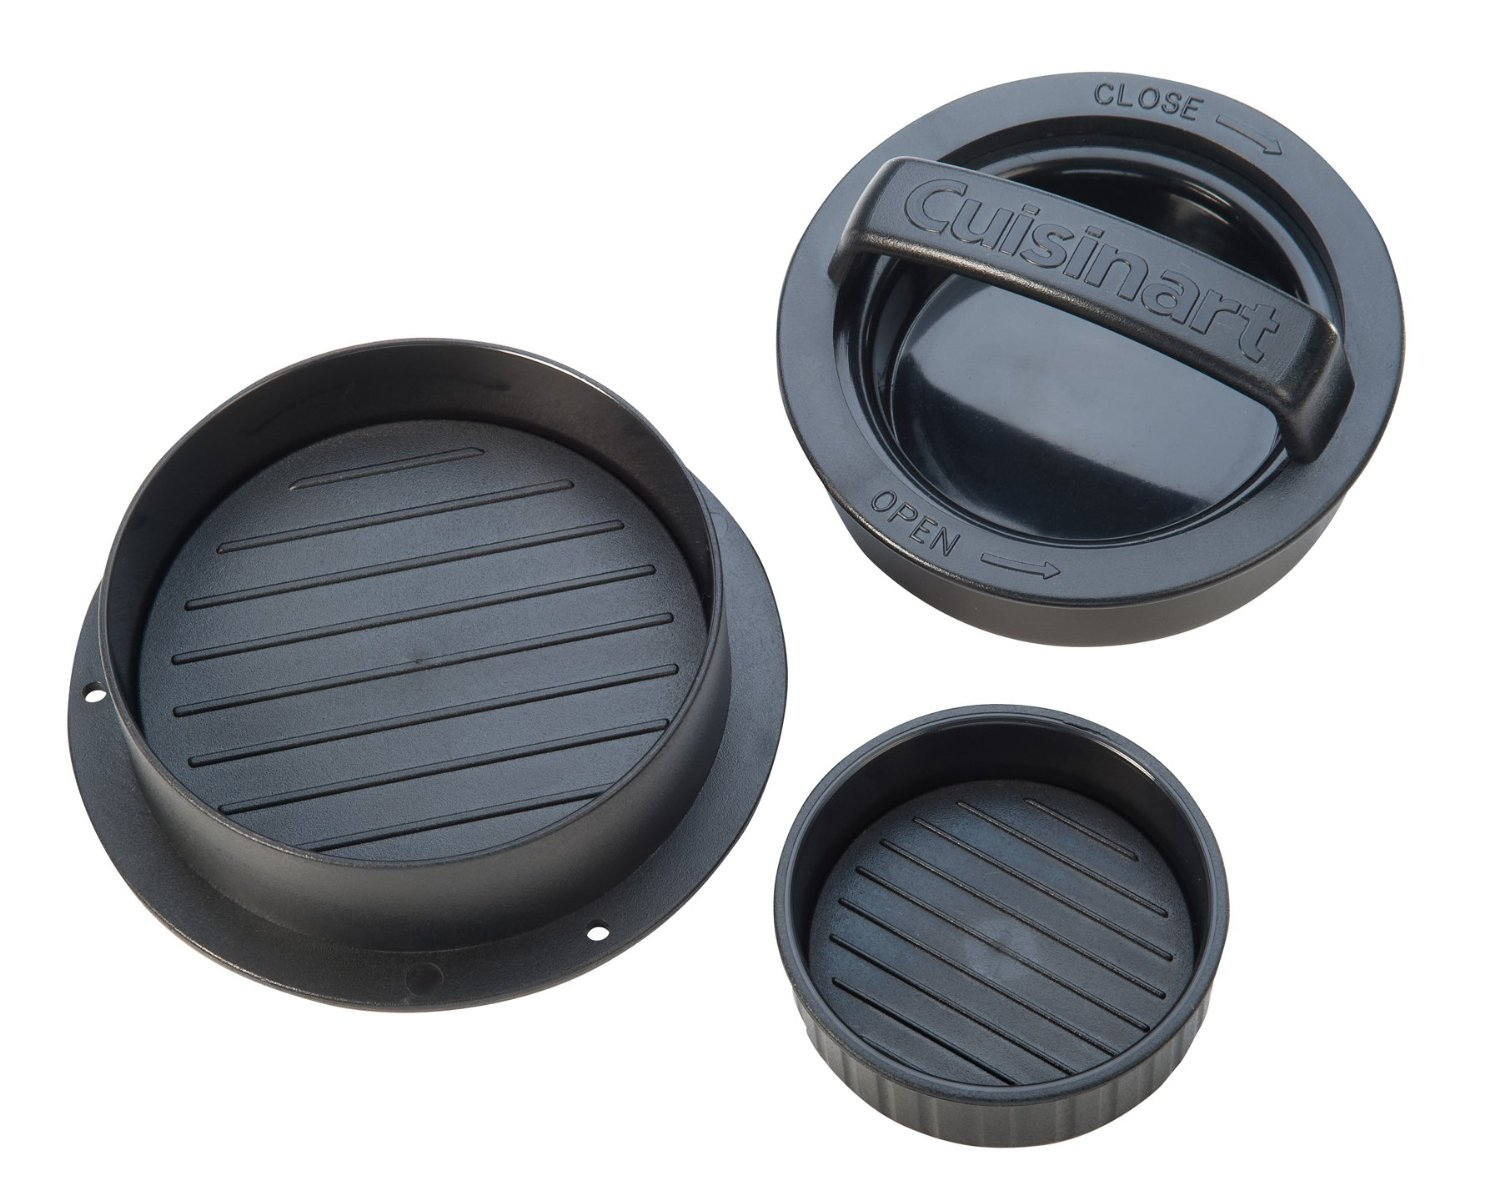 Cuisinart 3-in-1 burger press. ($8)